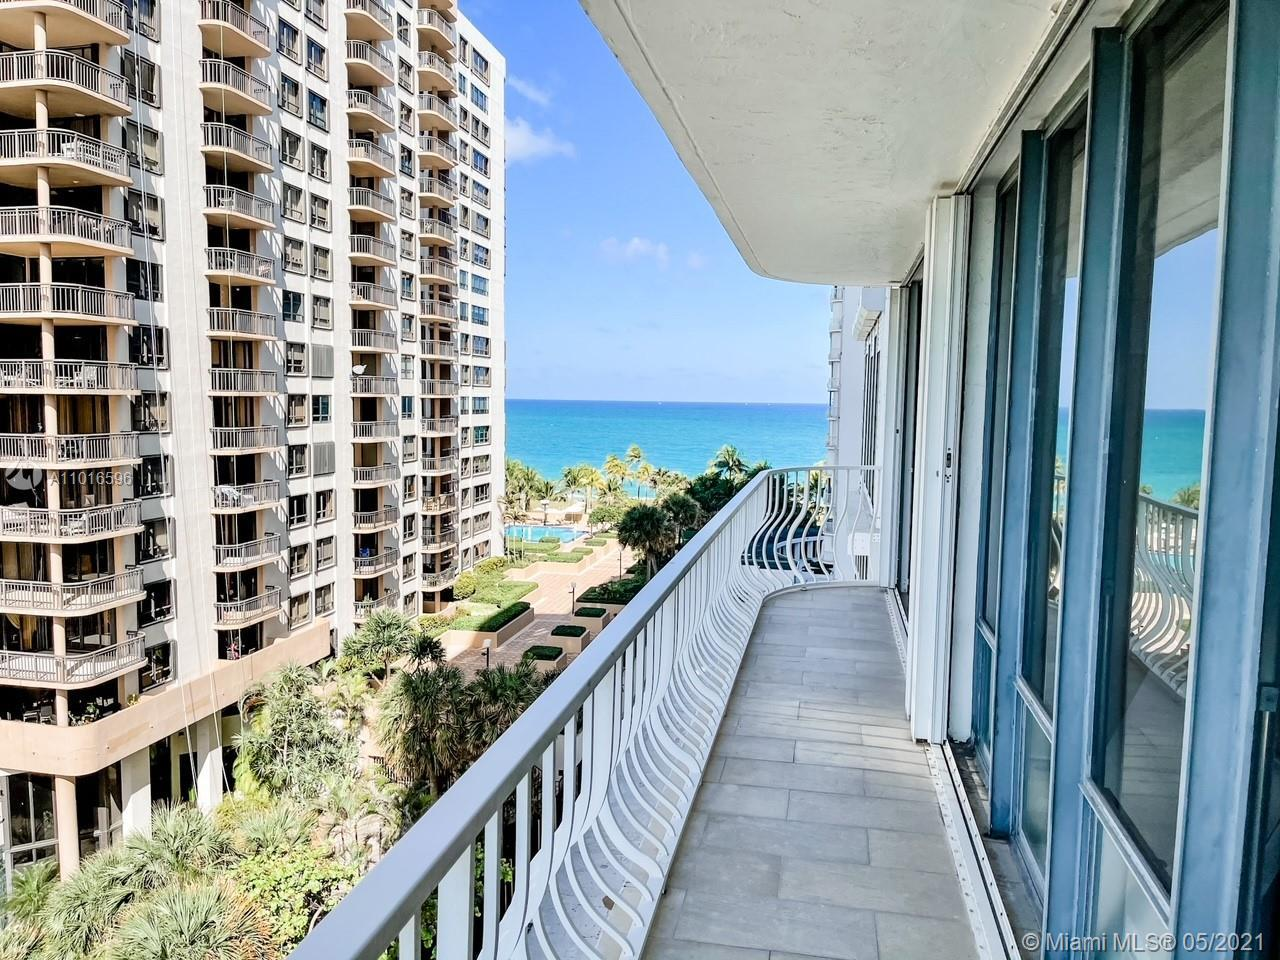 Beautiful corner unit apartment located on the beautiful 101 Bal Harbour building. Apartment overloo